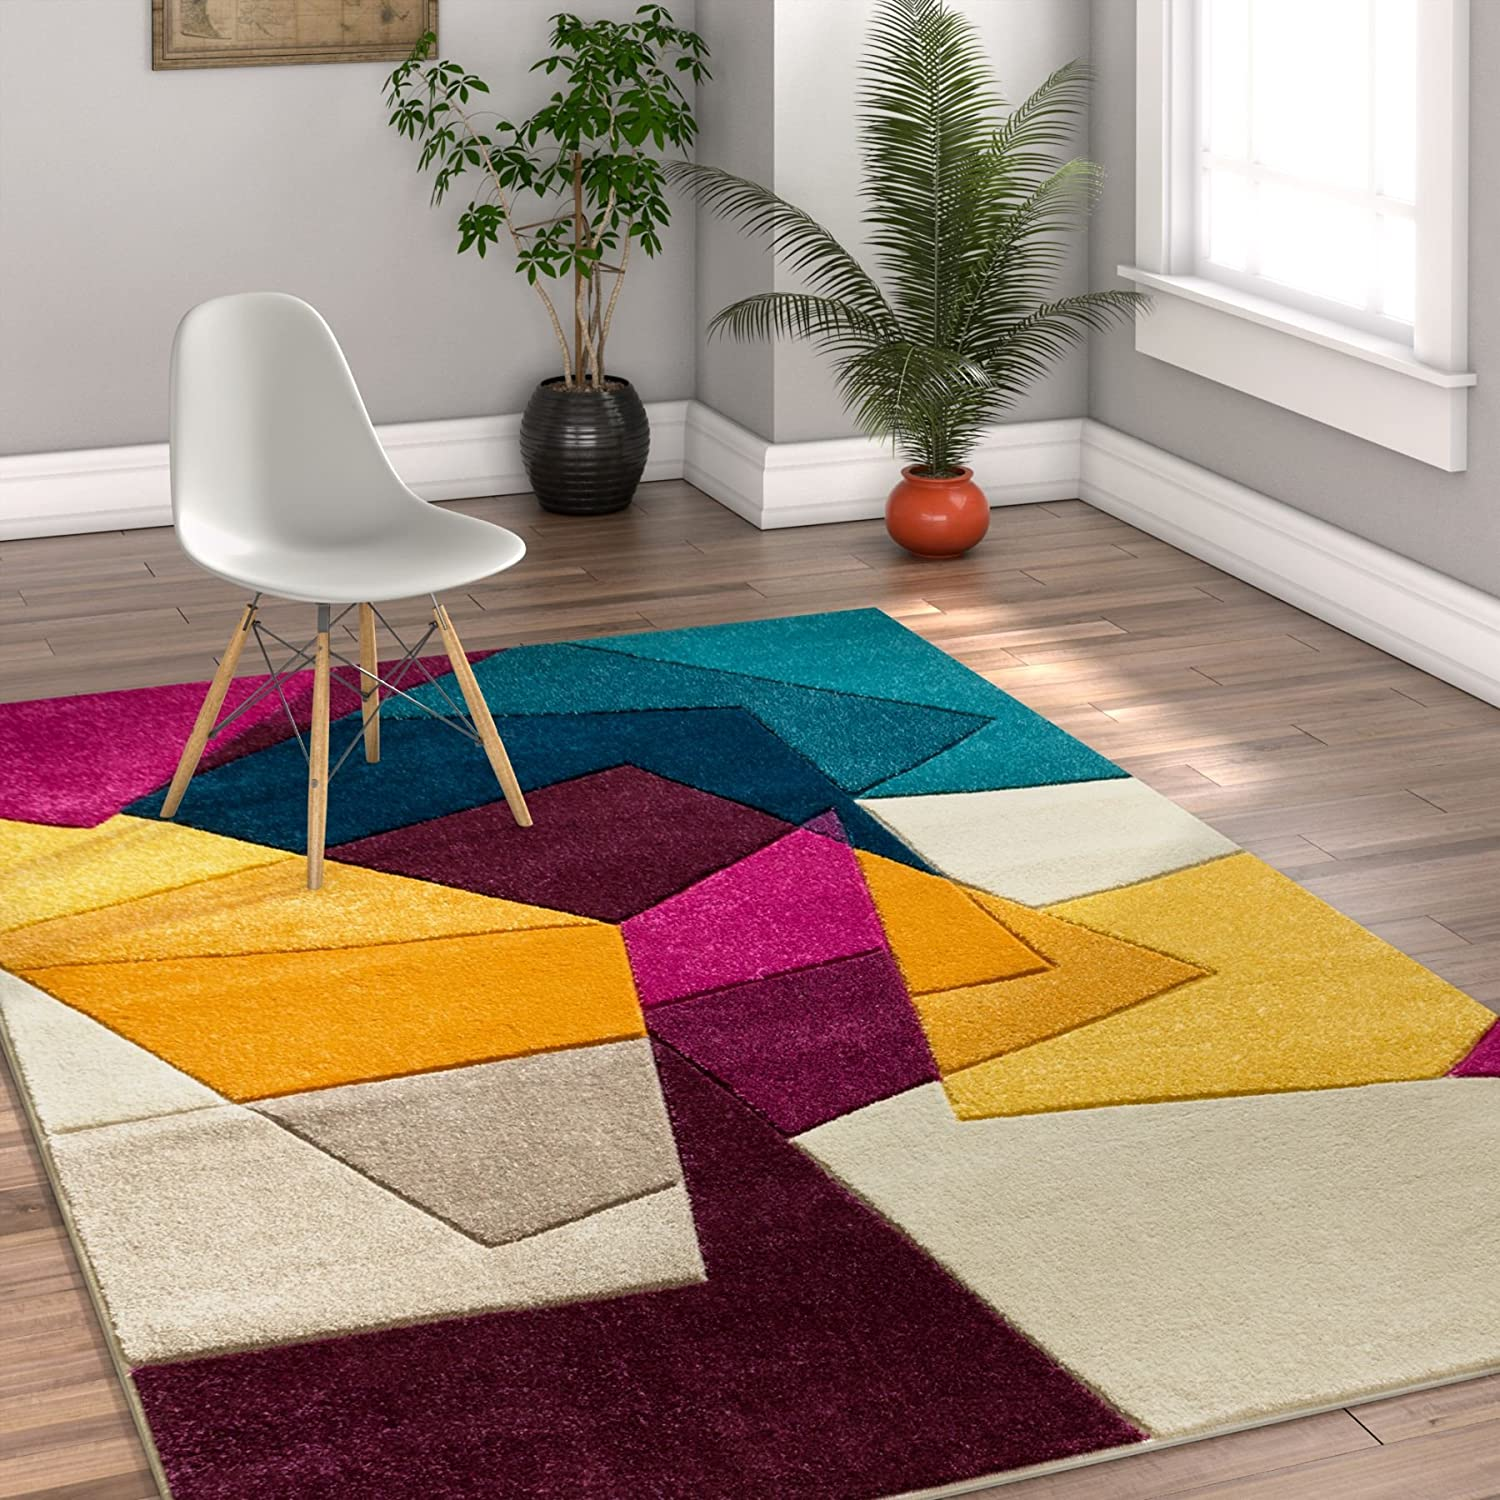 Modern, Contemporary Geometric Multicolor Rug Collection